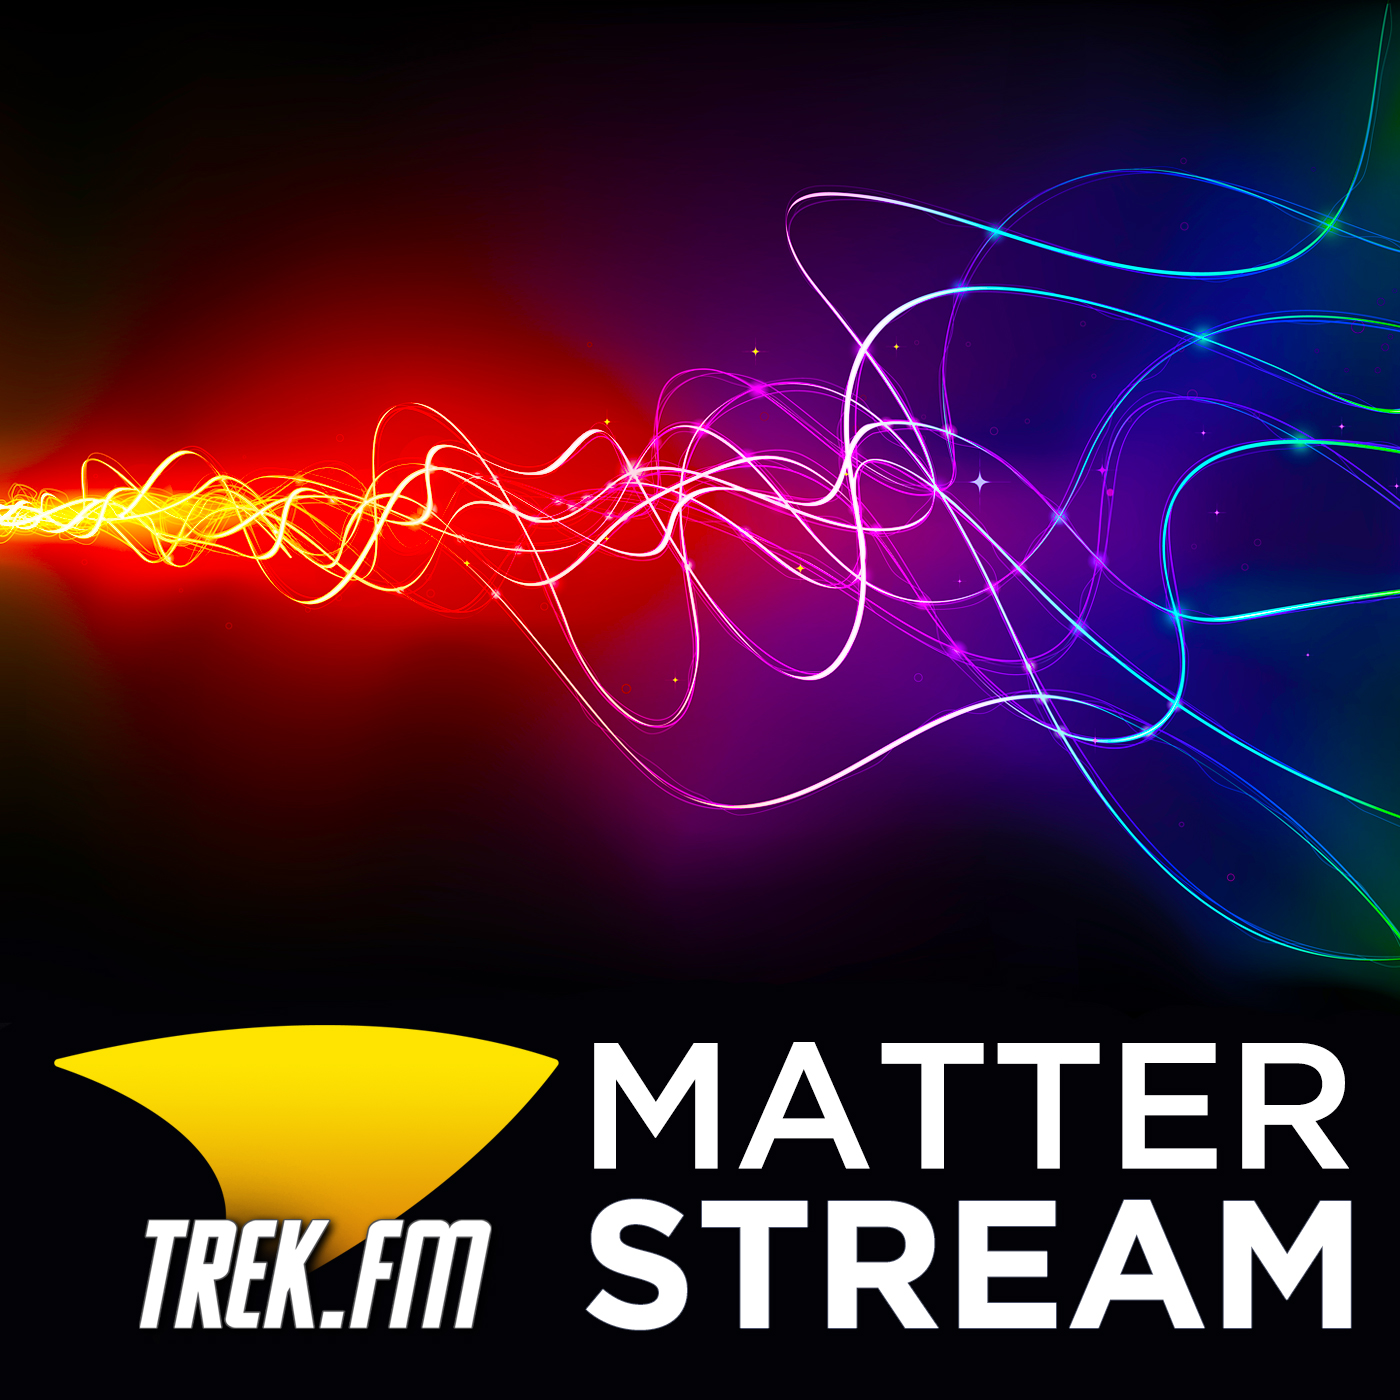 Star Trek Podcast | Matter Stream - Science and Social Issues | Trek.fm